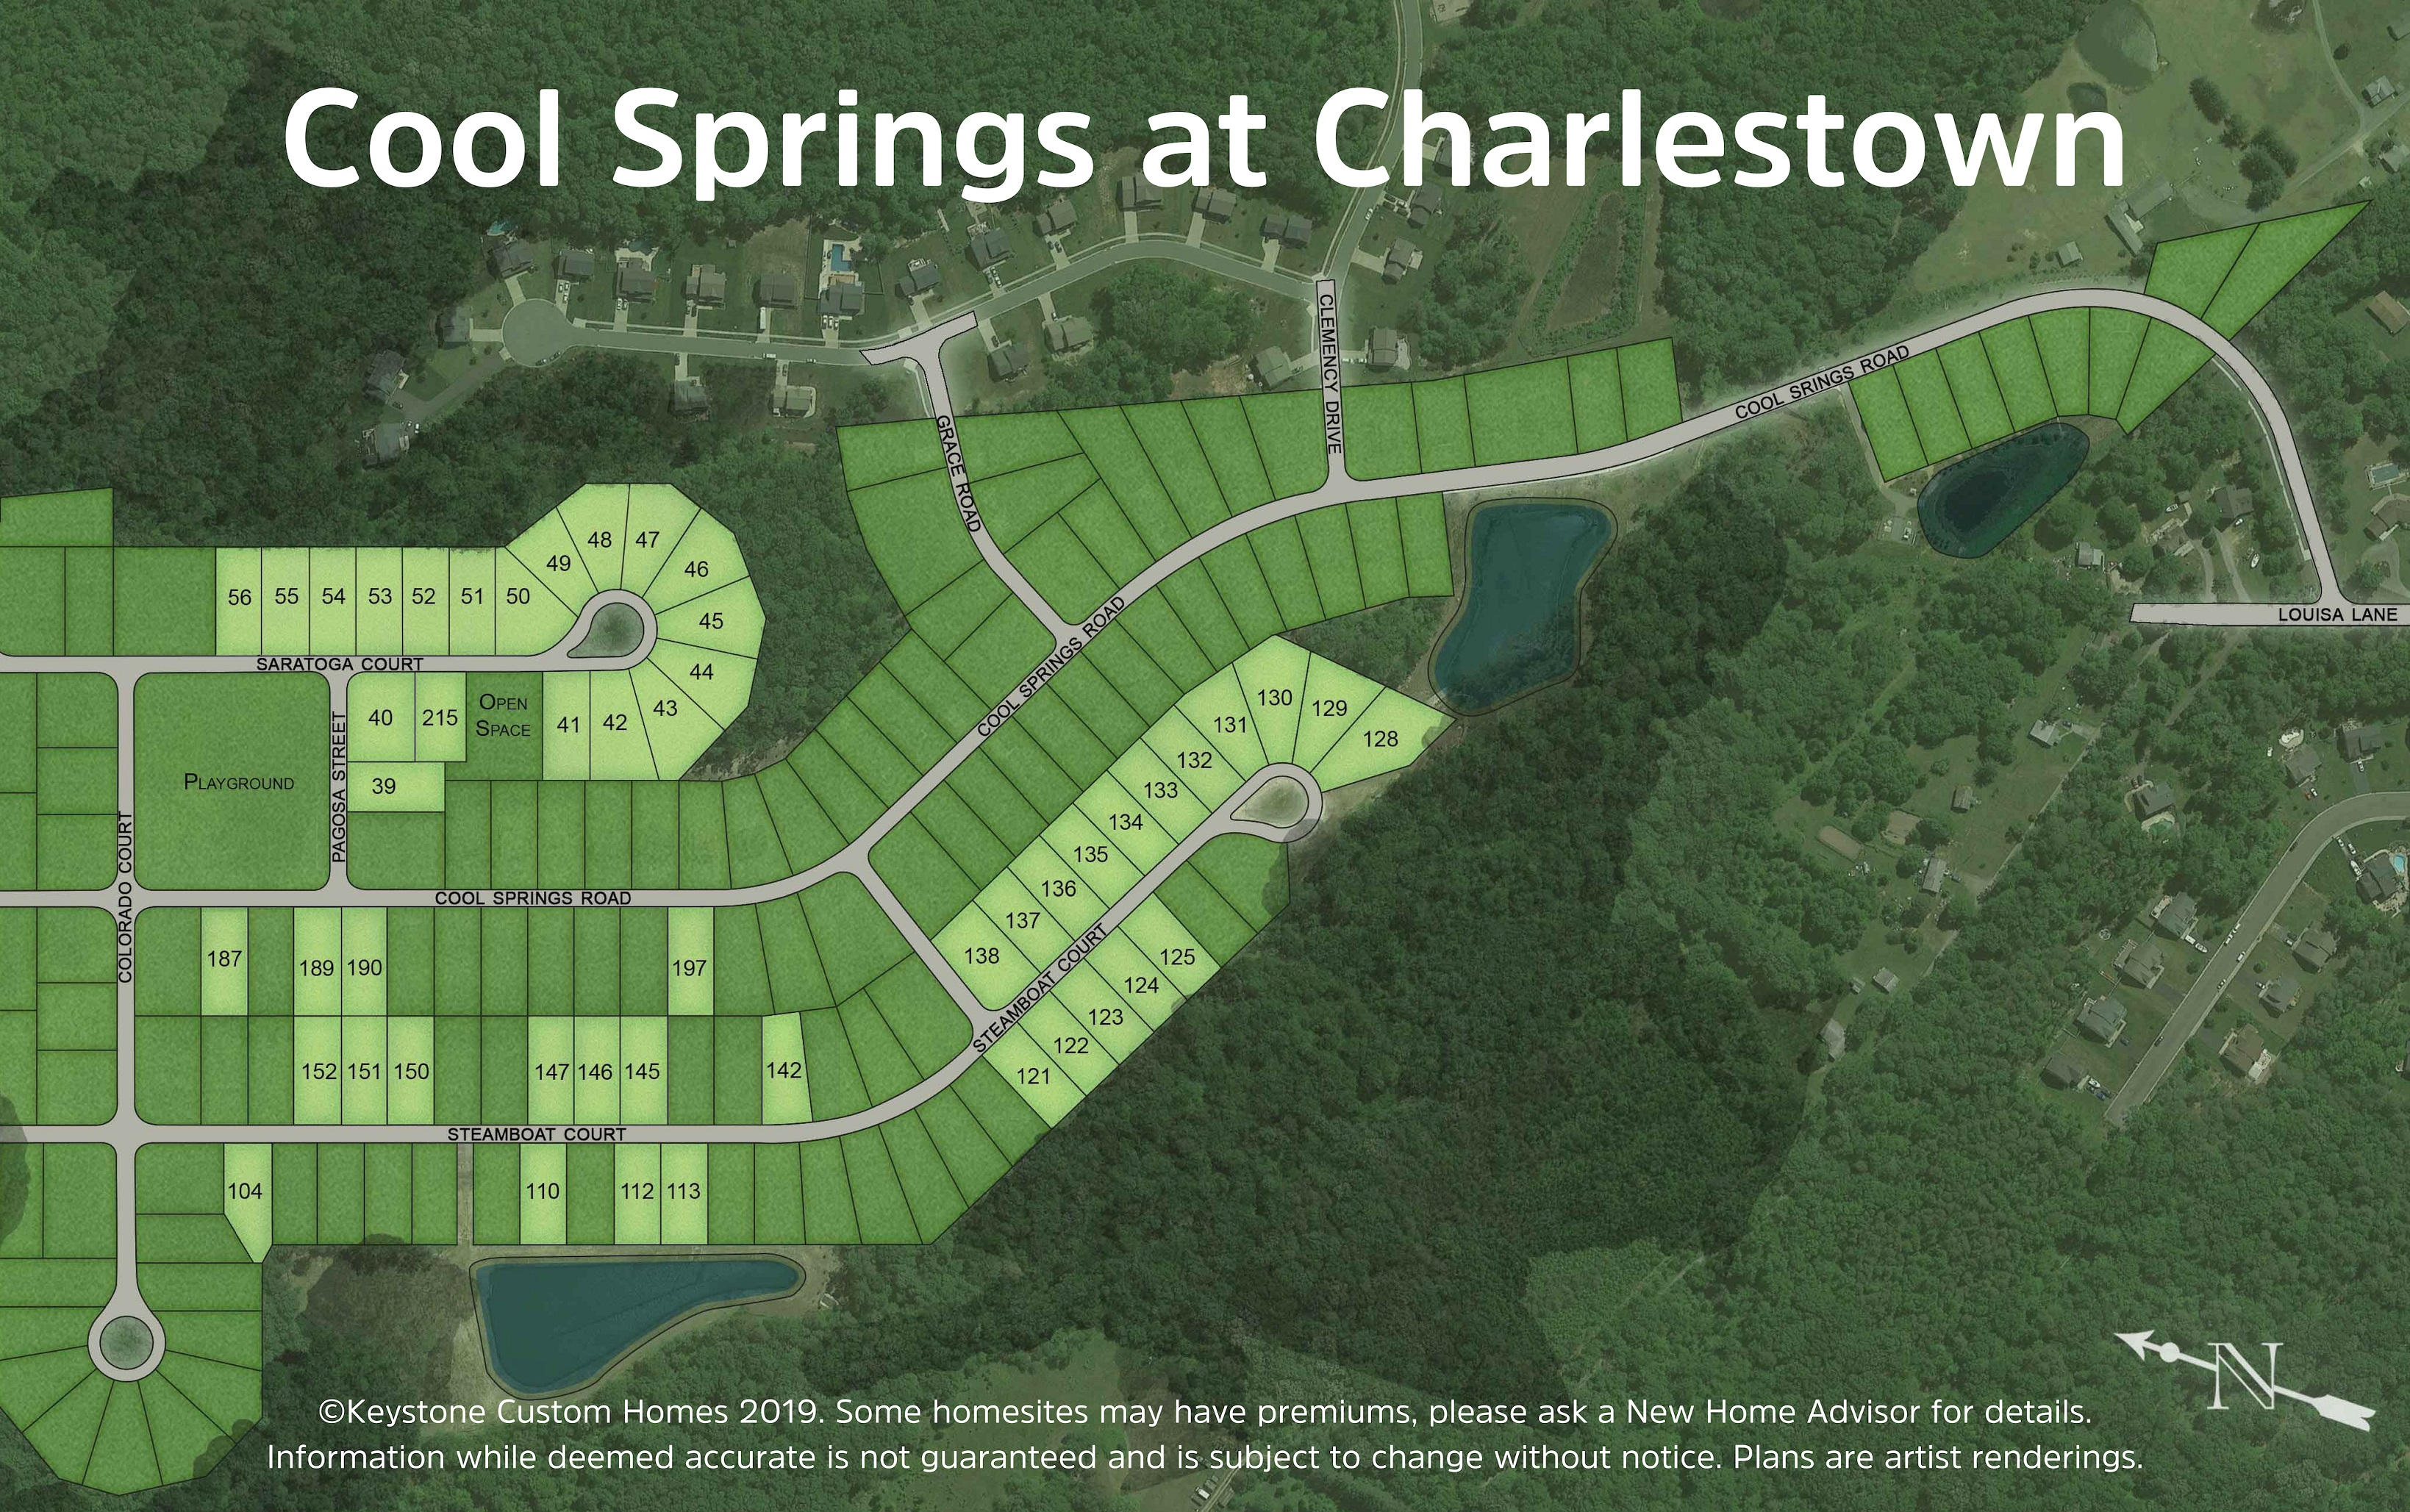 Cool Springs at Charlestown Lot Map Background